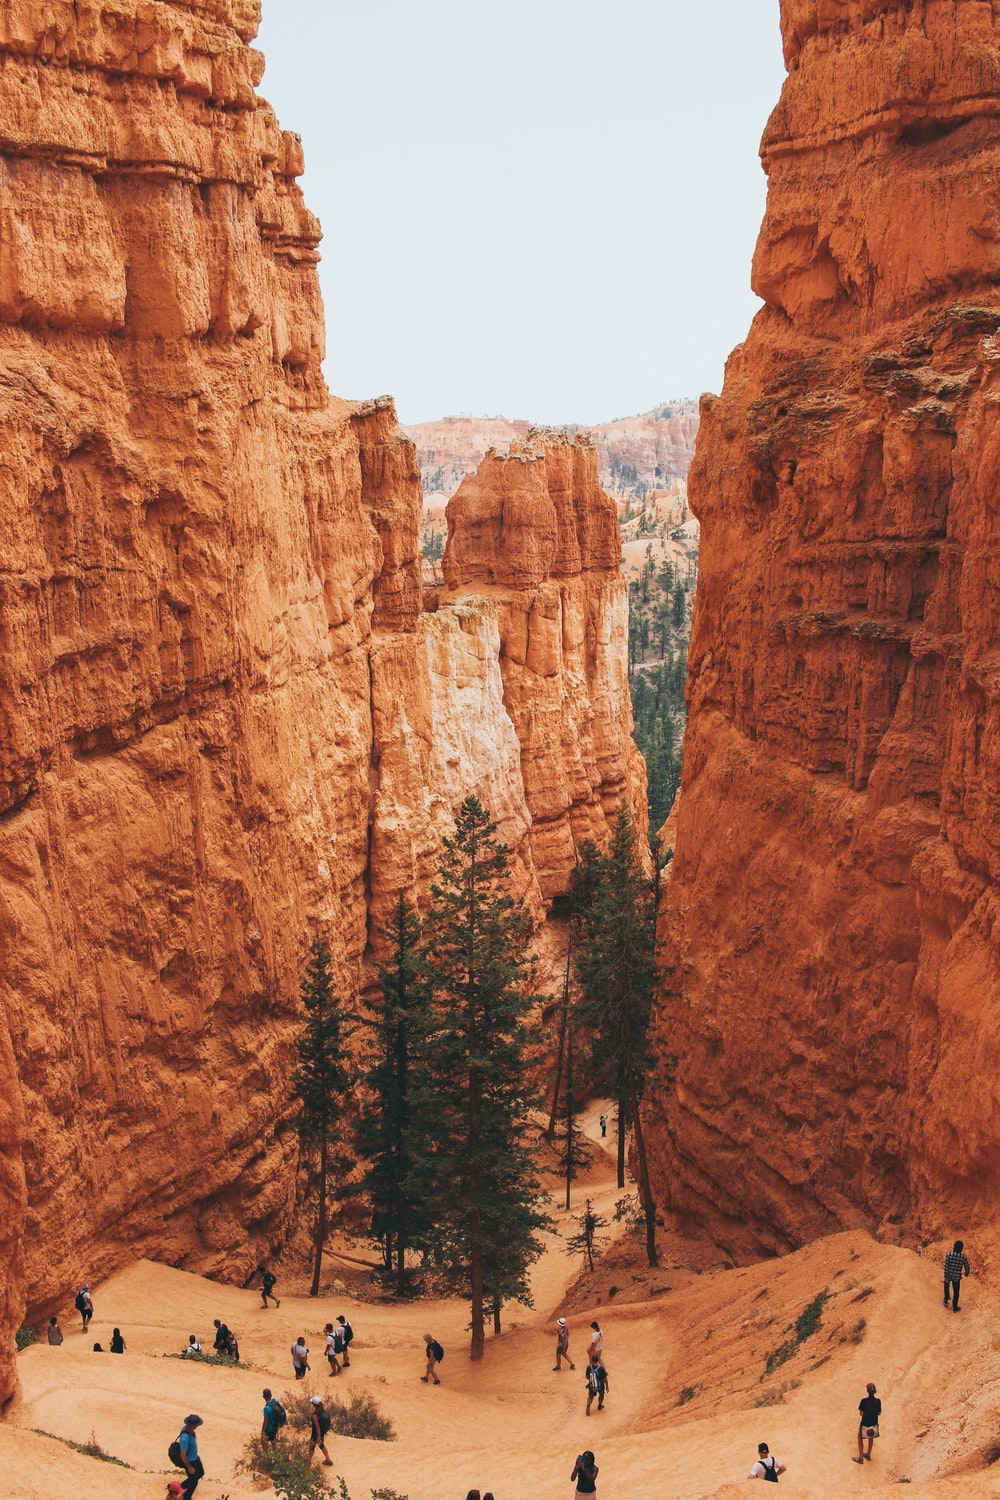 group of people in canyon during daytime